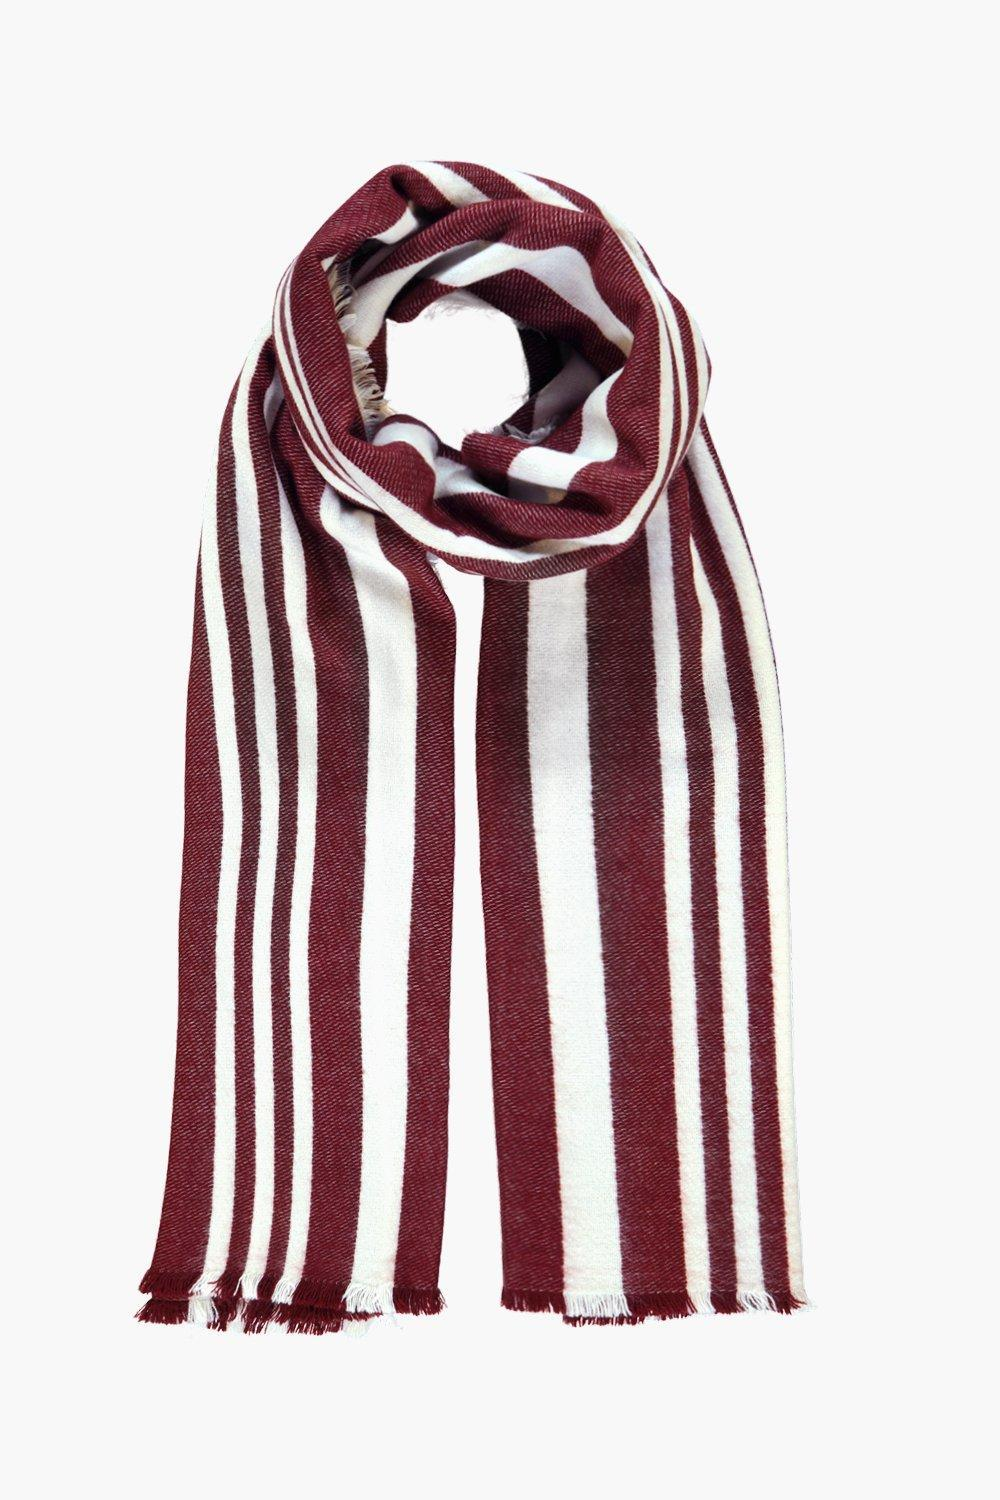 Varied Stripe Wool Oversized Scarf Terracotta - secondary colour: white; predominant colour: burgundy; occasions: casual, creative work; type of pattern: standard; style: regular; size: standard; material: knits; pattern: vertical stripes; season: a/w 2016; wardrobe: highlight